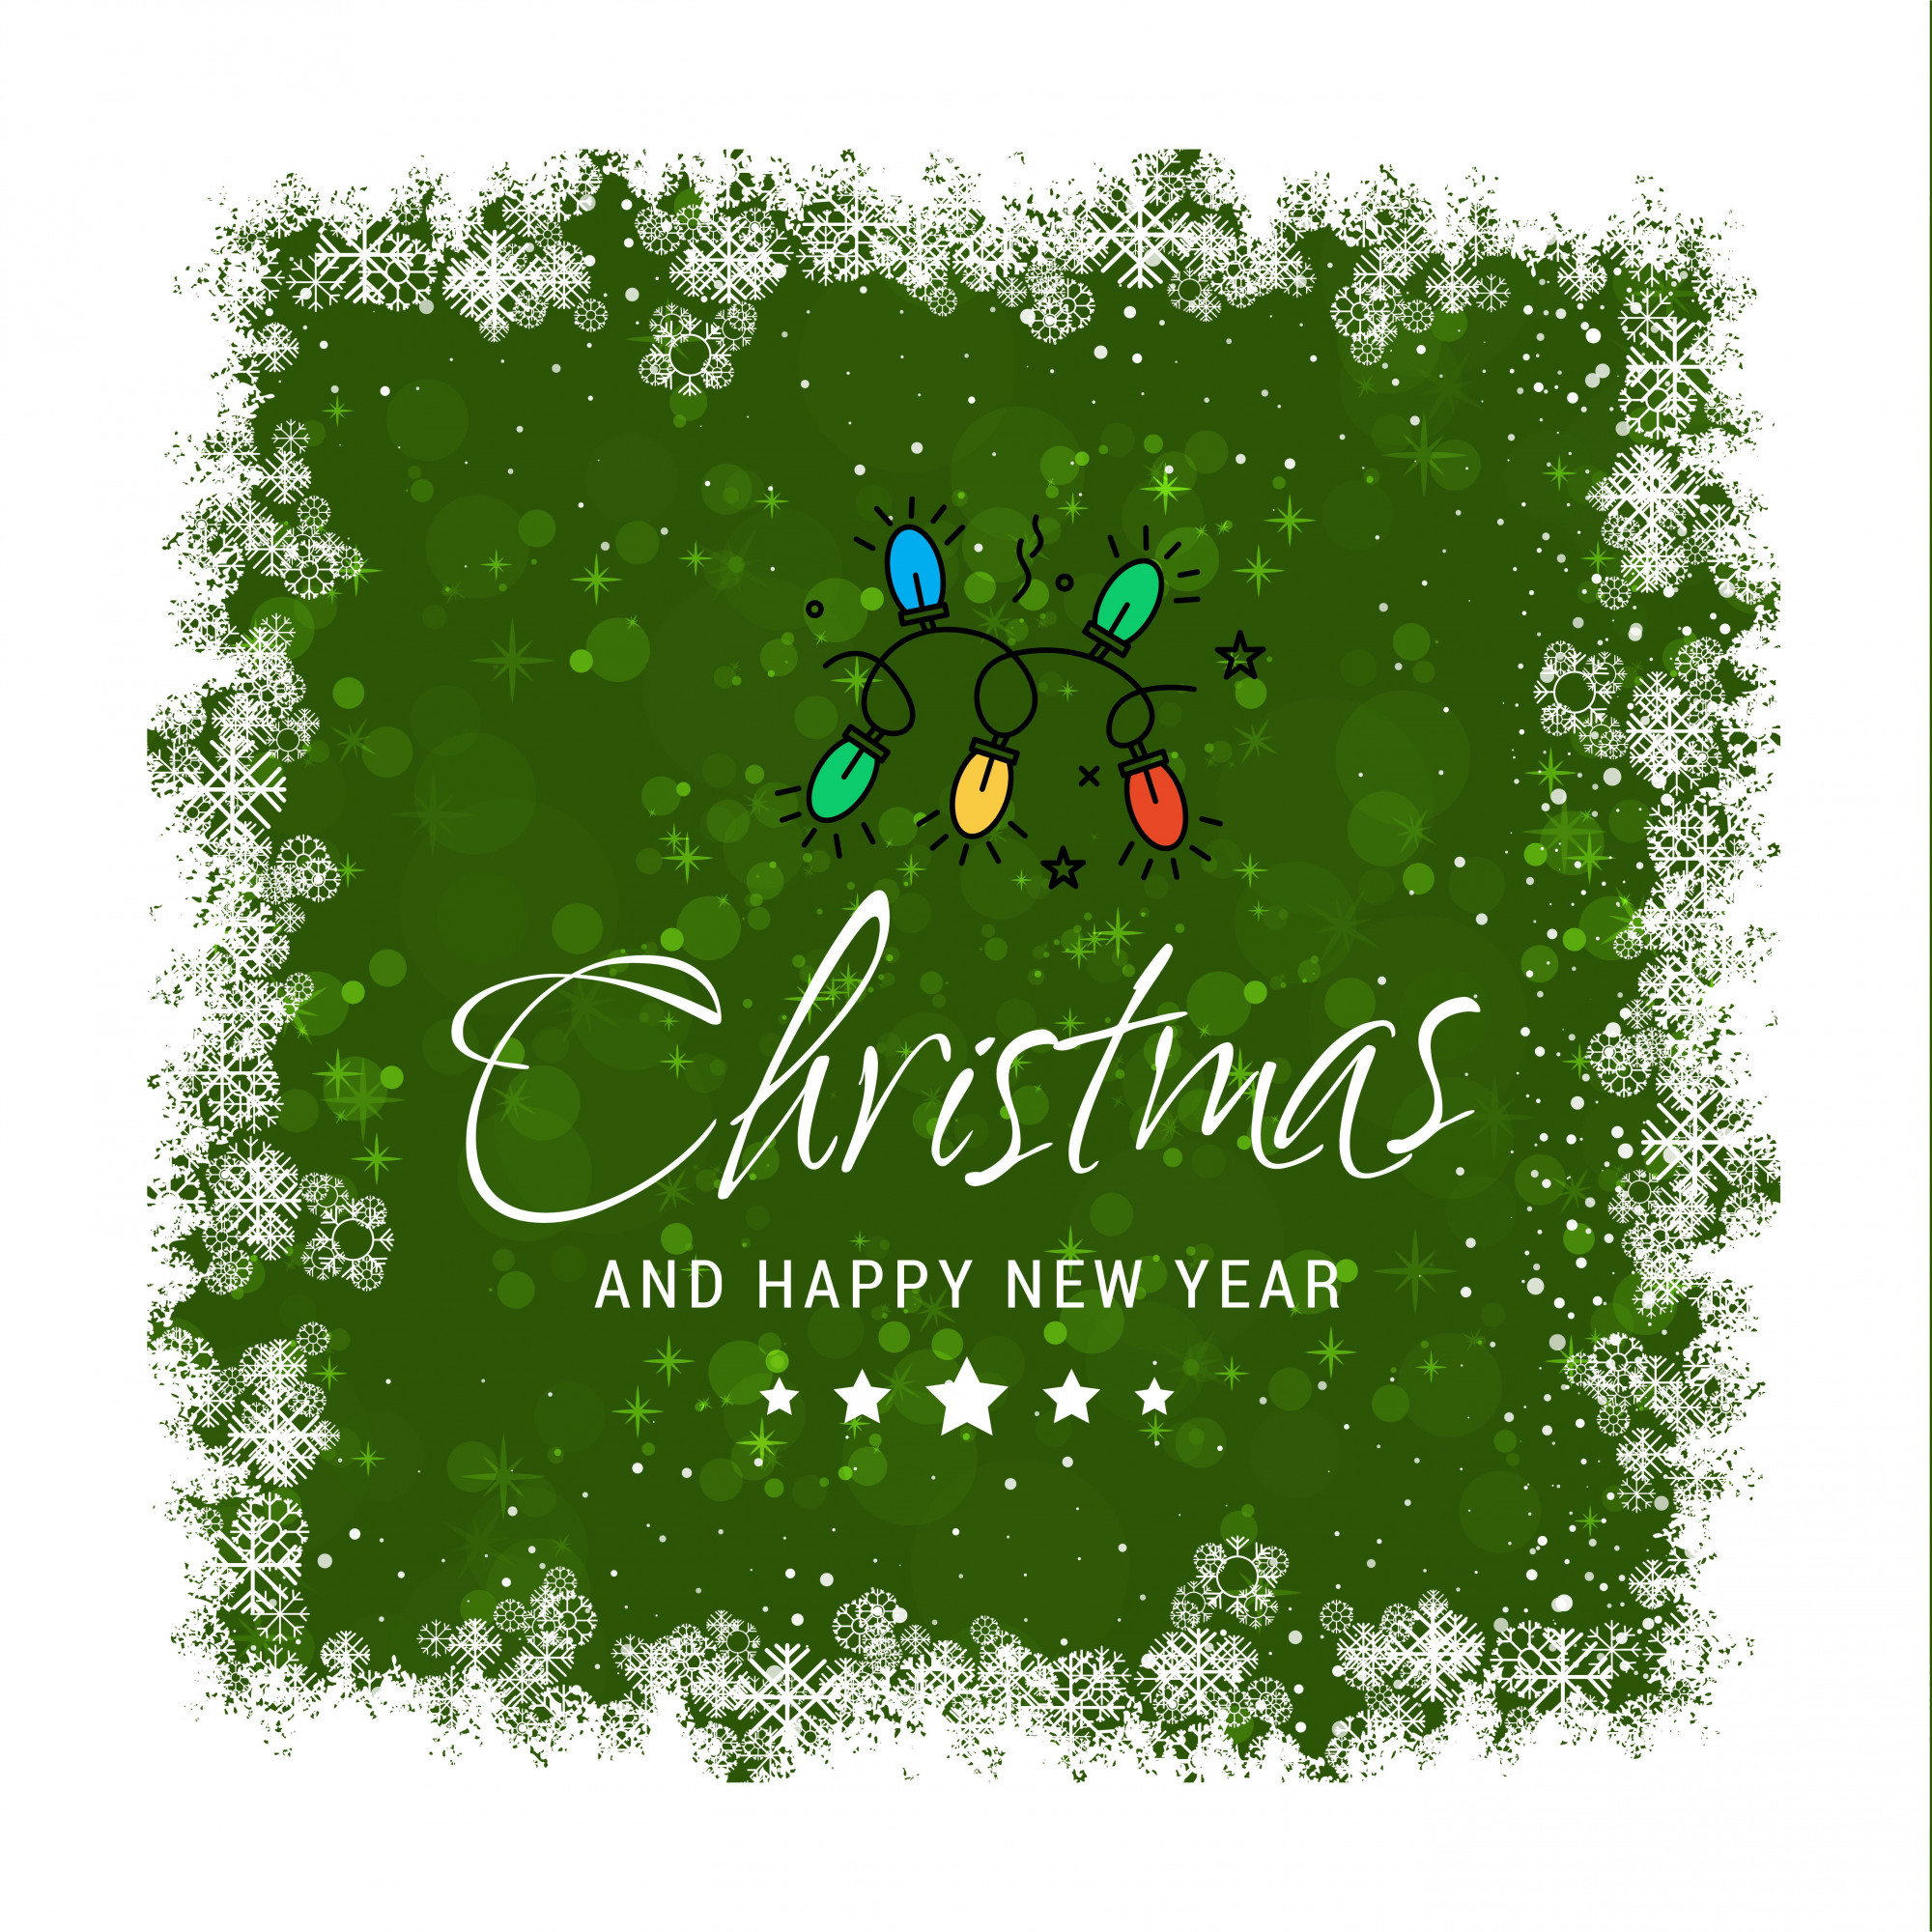 Christmas greetings card with typography